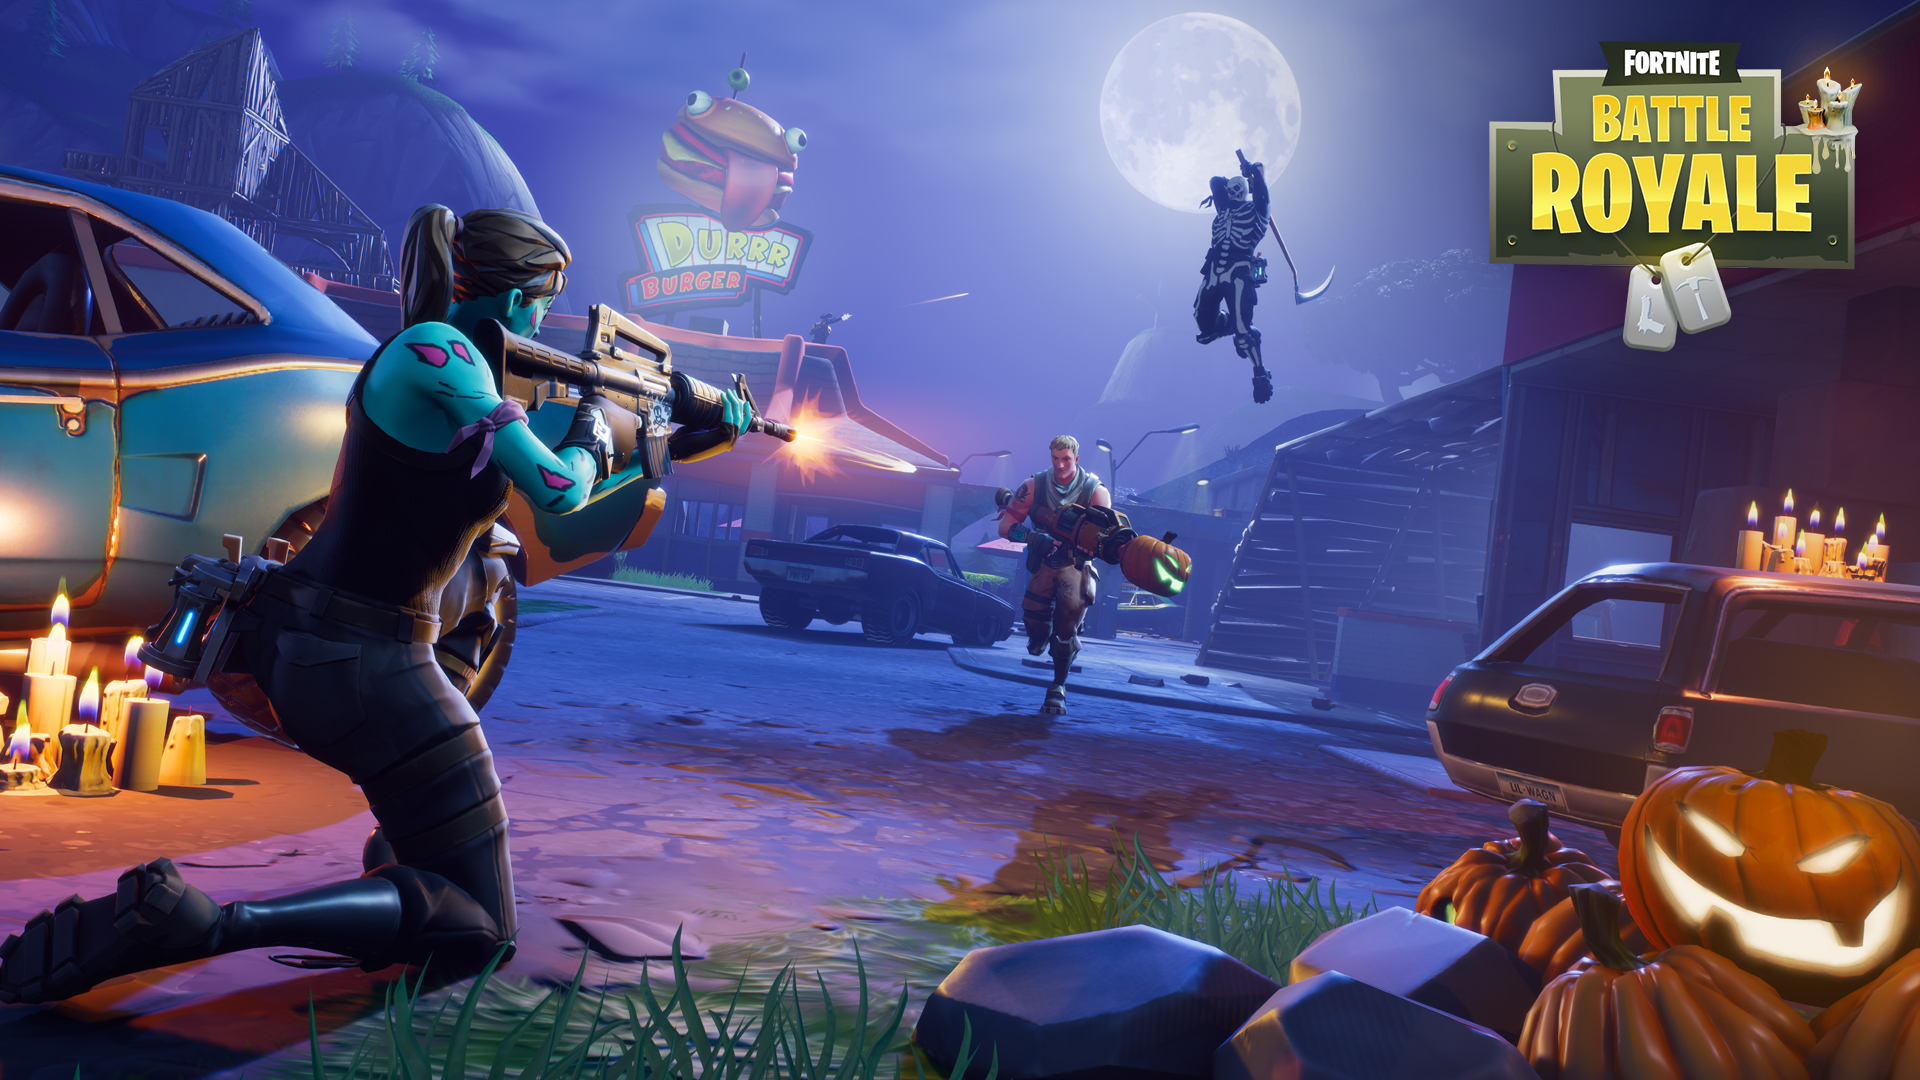 epic games - fortnite tipps bauen